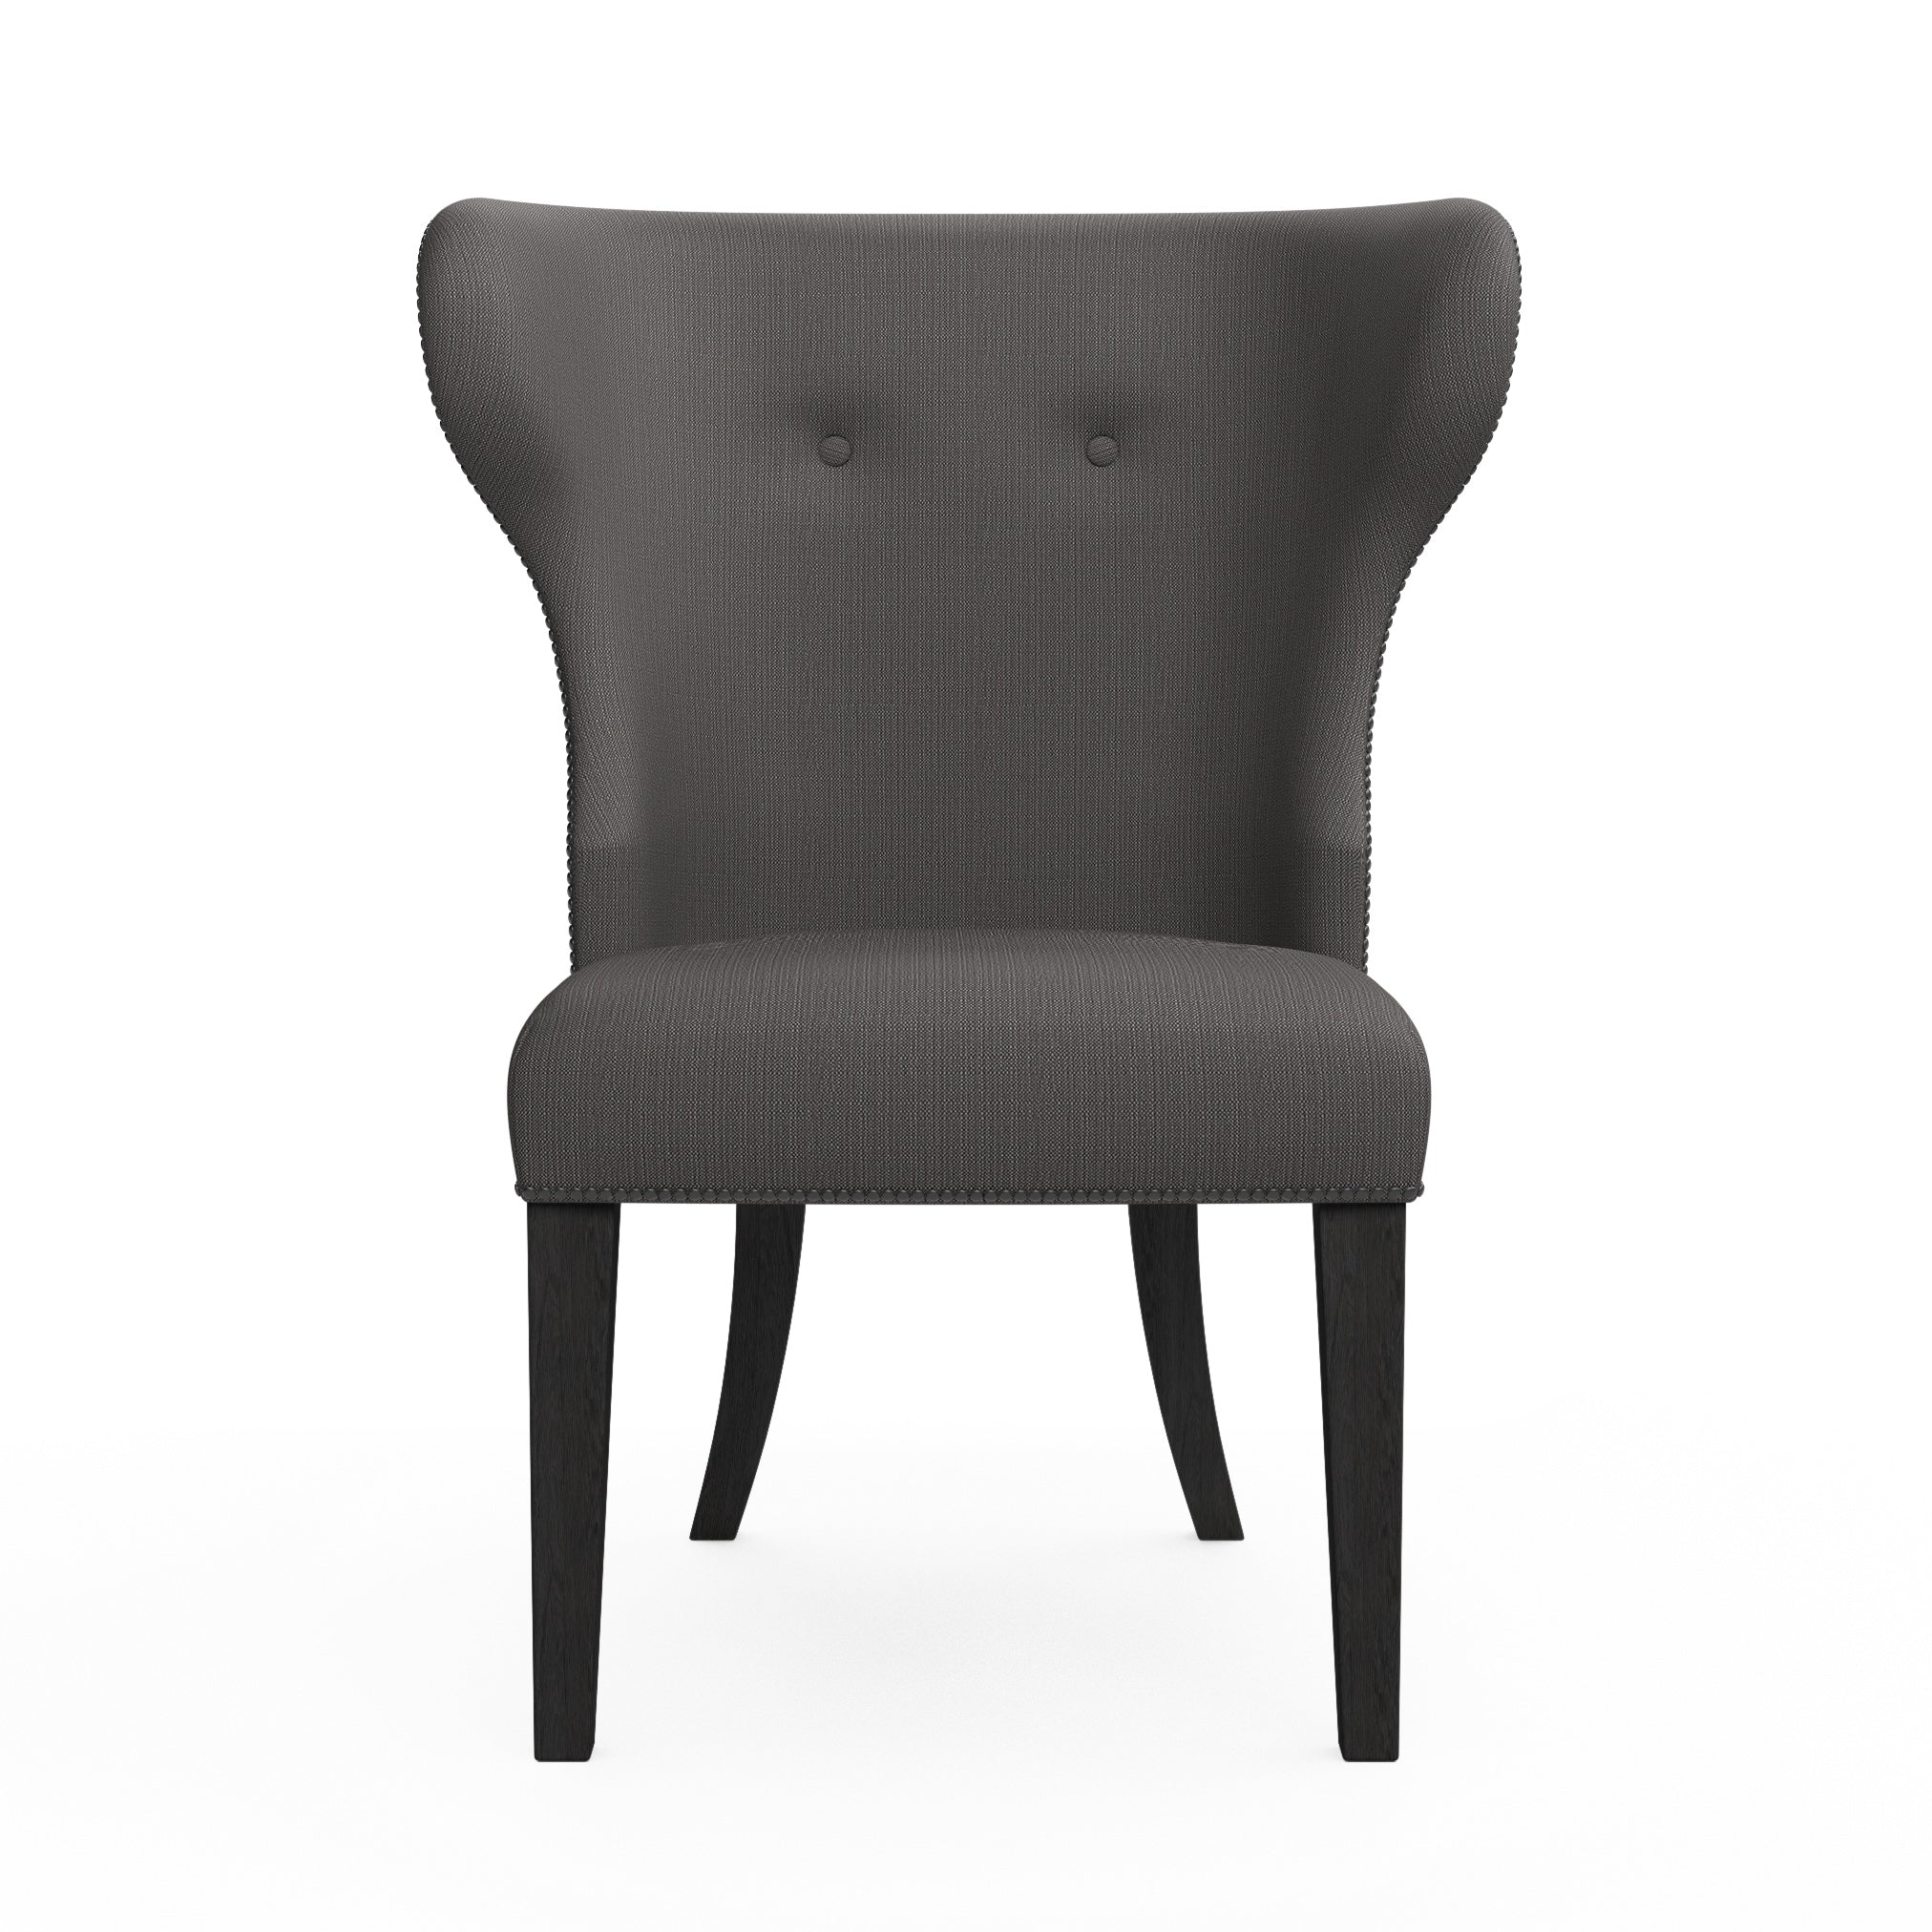 Nina Dining Chair - Graphite Box Weave Linen